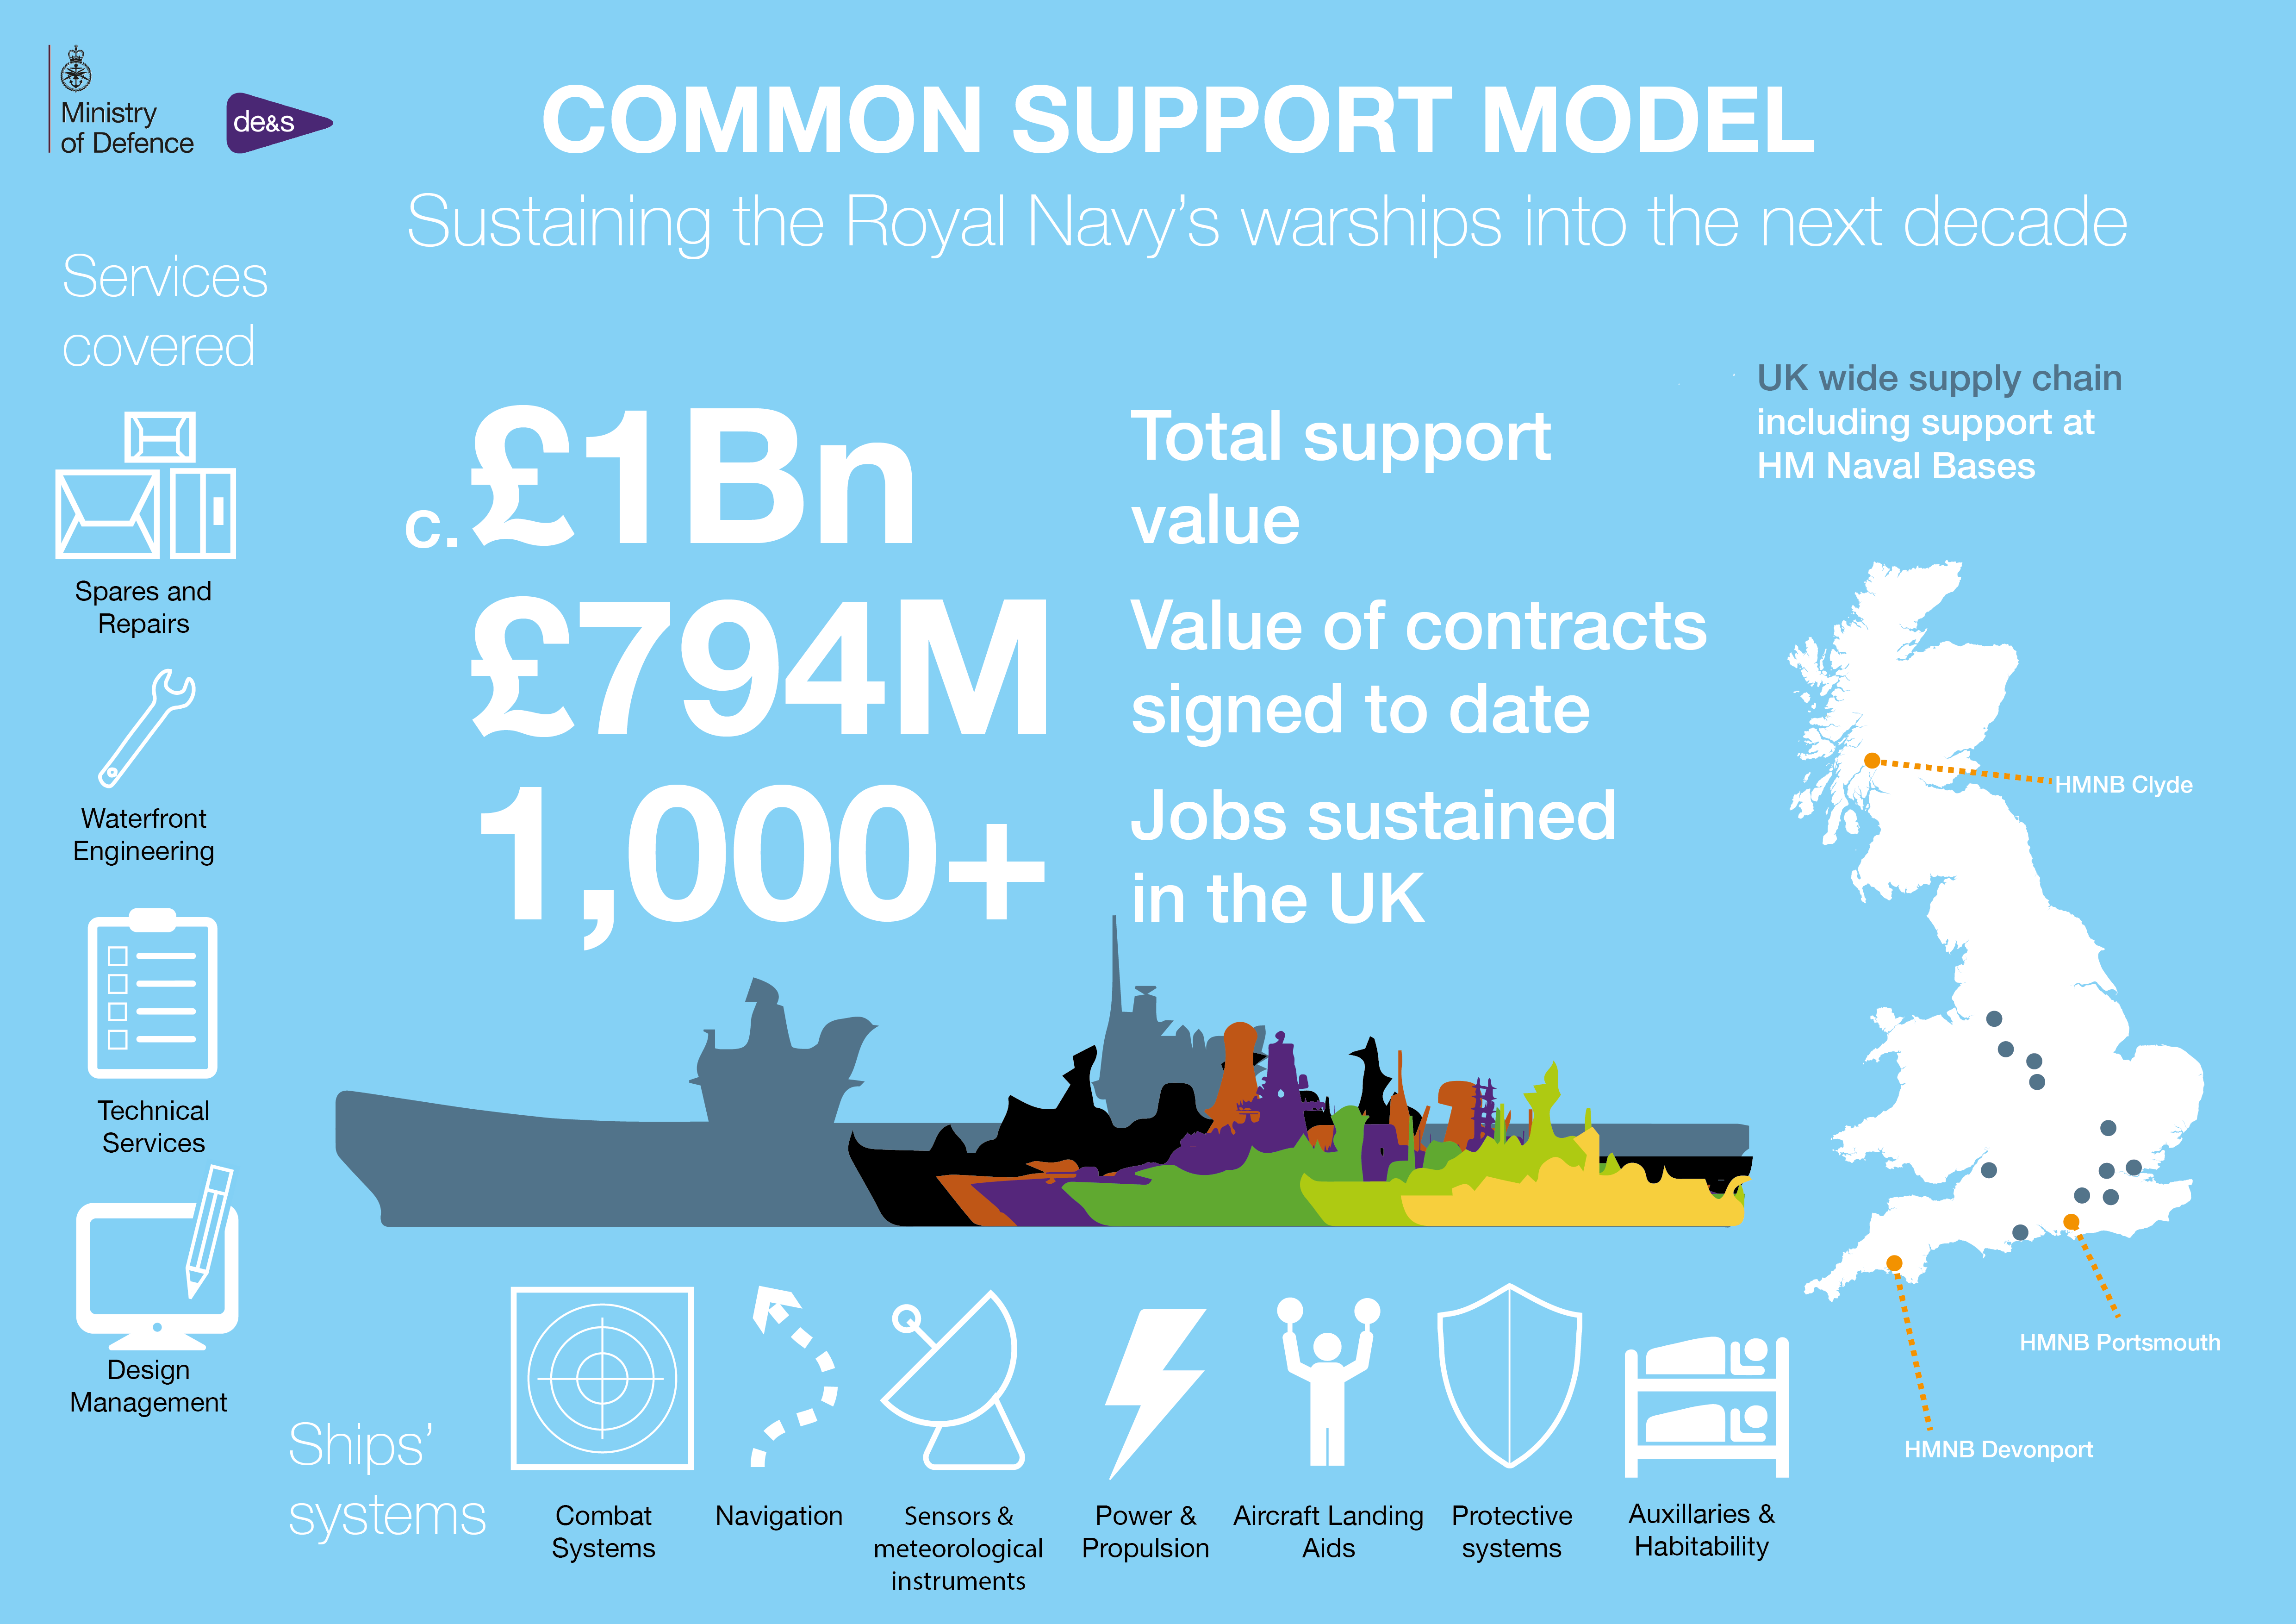 Common Support Model infographic